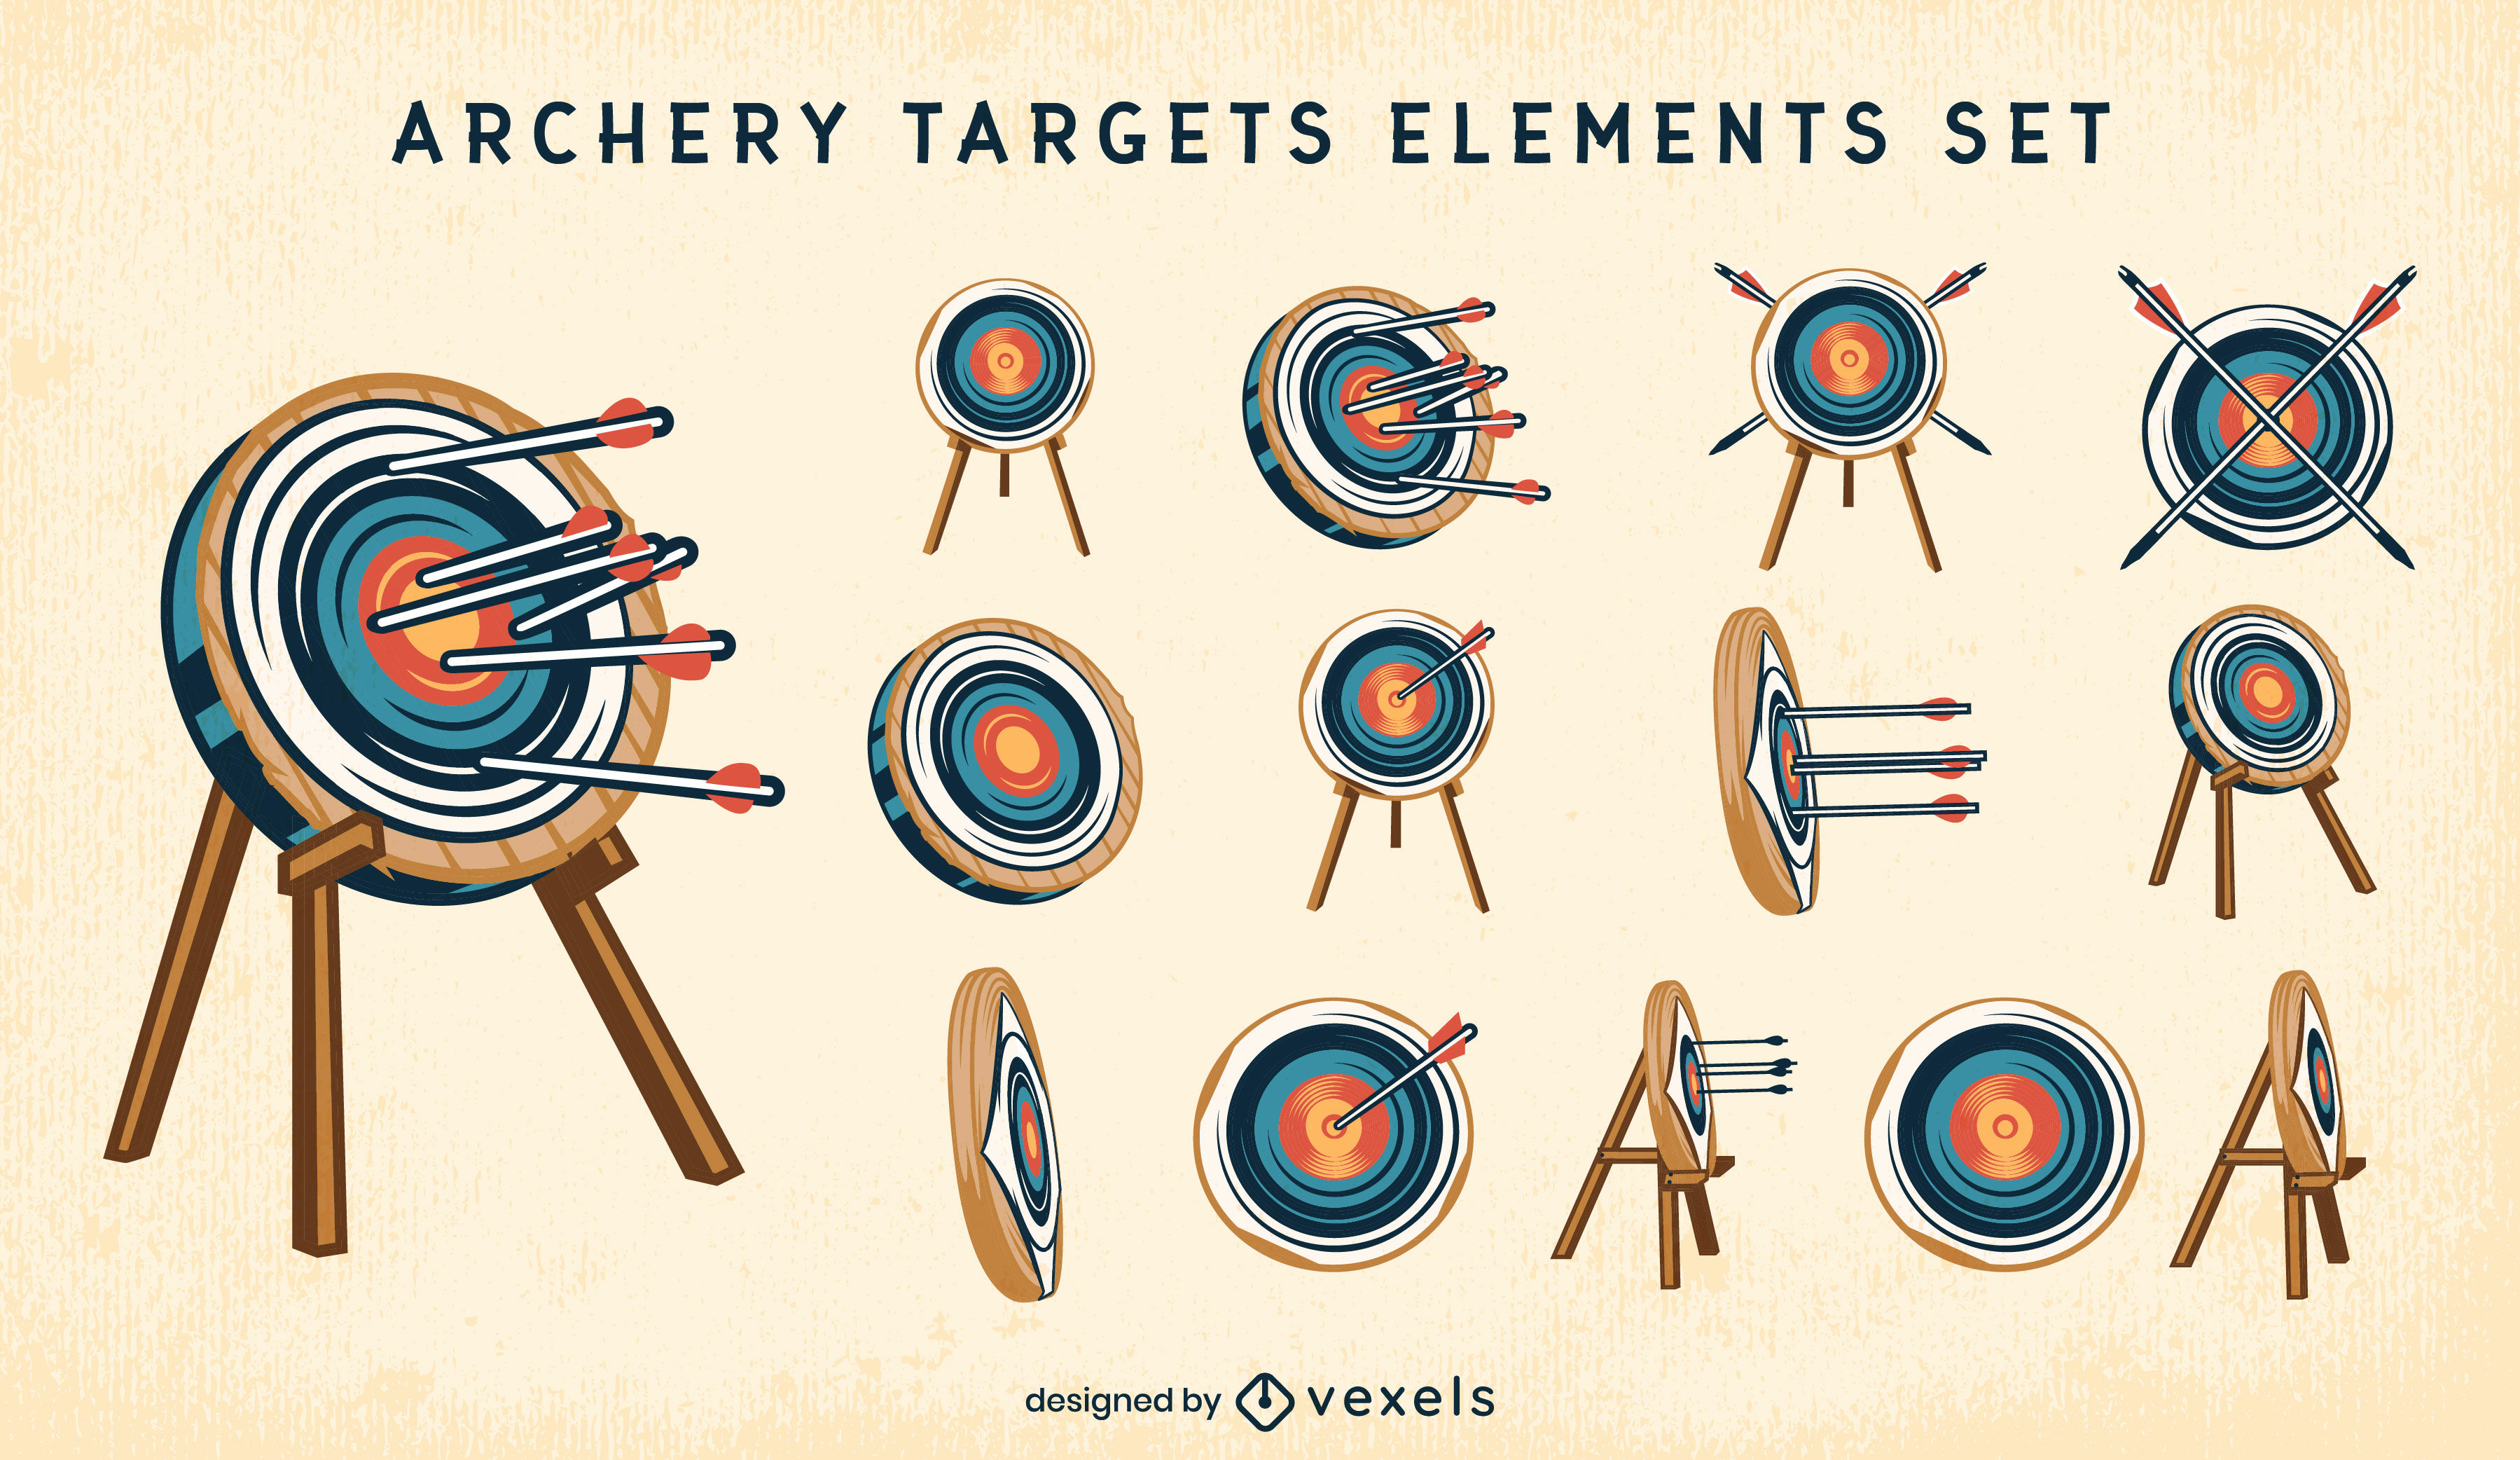 Archery targets and arrows elements color stroke